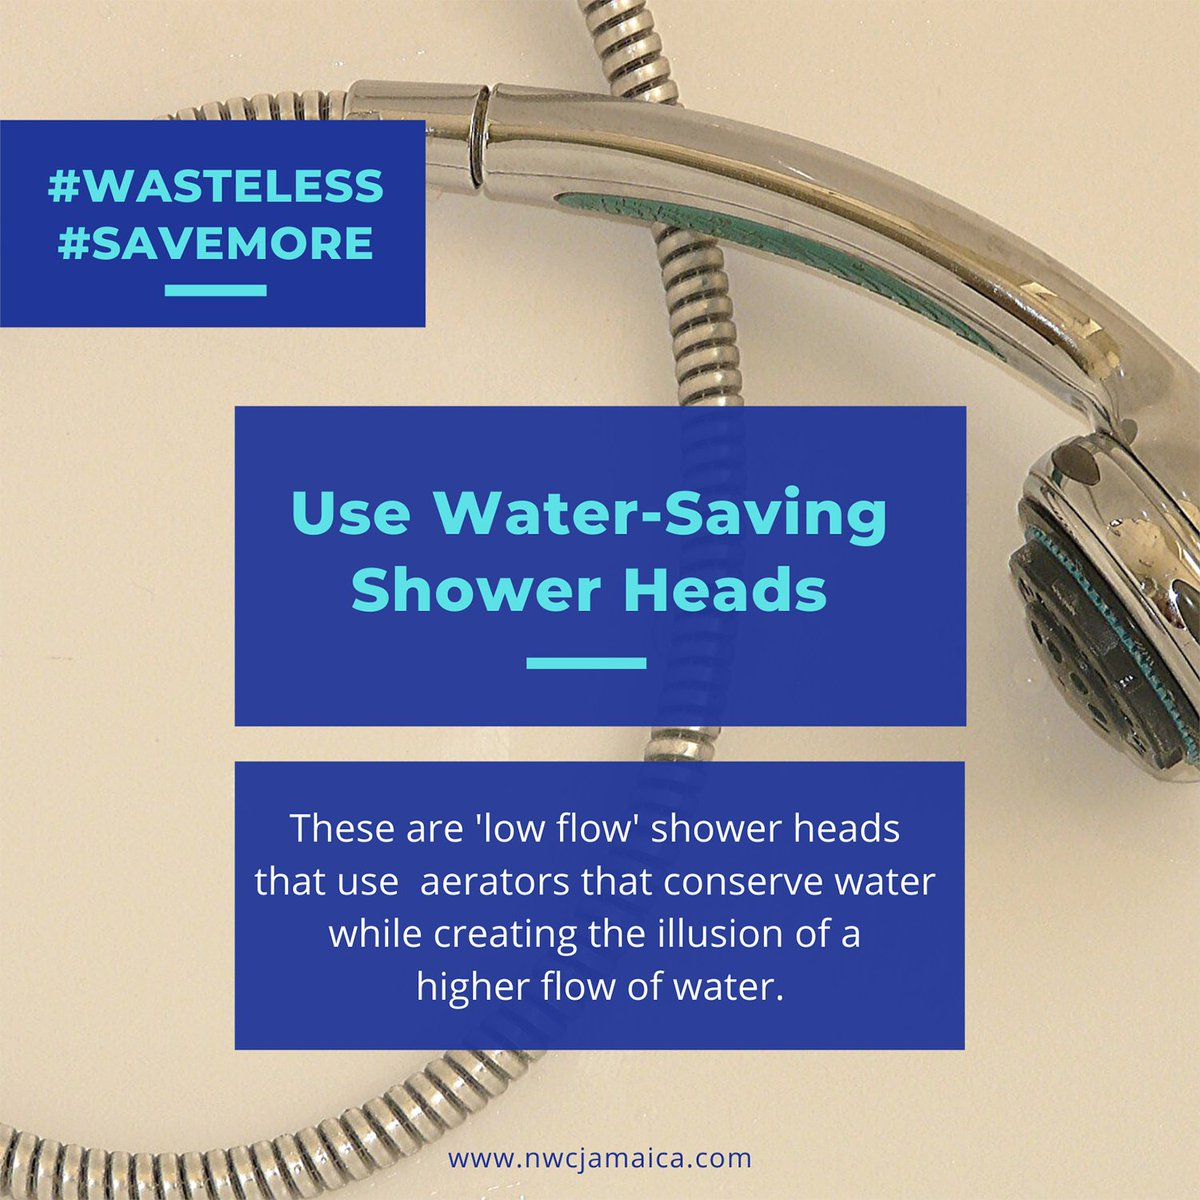 #waterwarriors Save water in your bathroom by using 'low flow' water-saving shower heads with aerators that use less water while creating the illusion of a higher flow. We continue to urge our customers to #conserve as #everydrop counts!